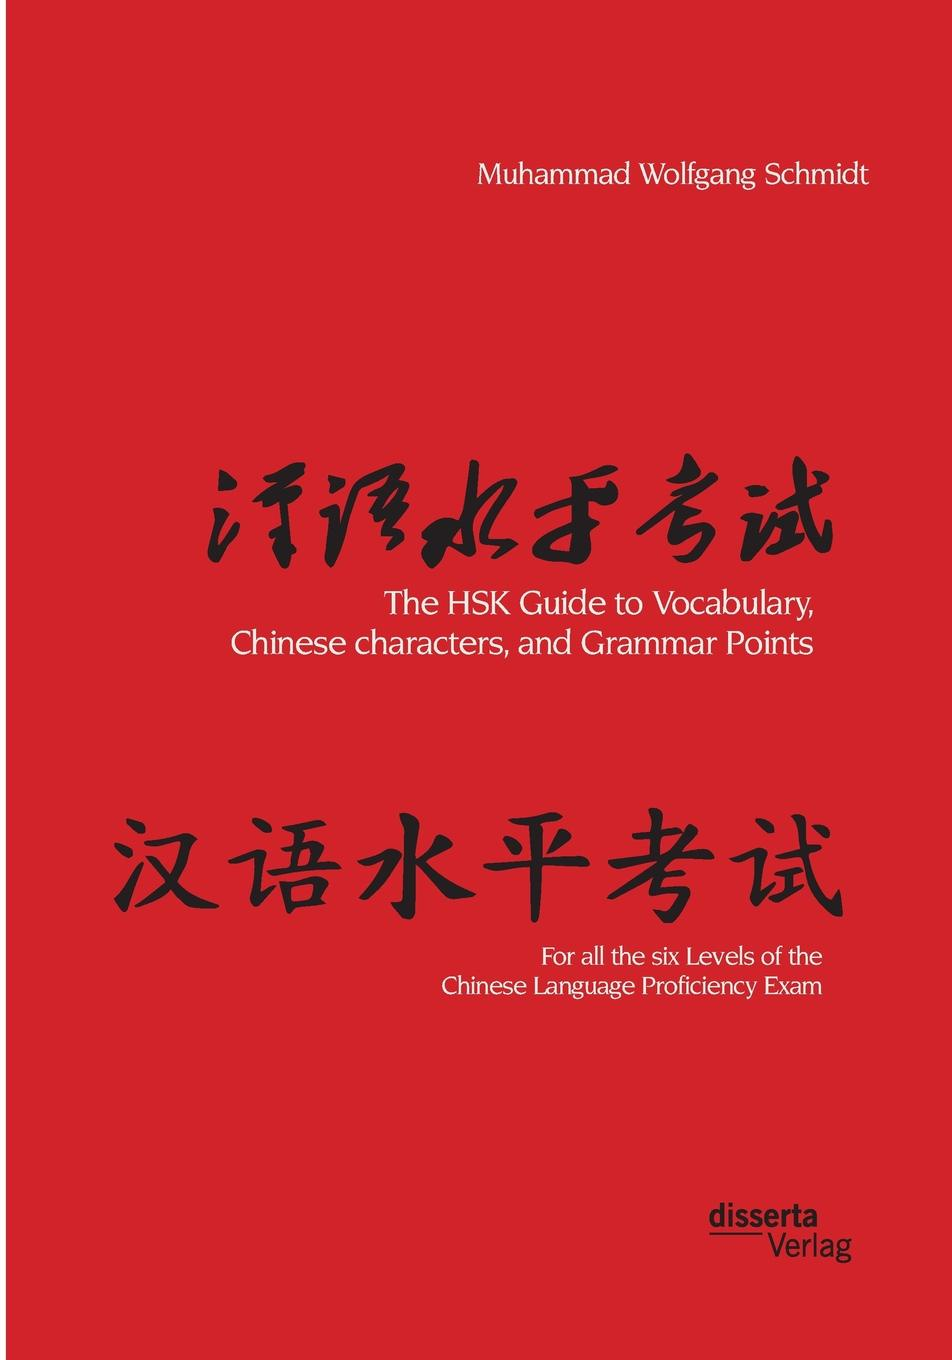 лучшая цена Muhammad Wolfgang G. A. Schmidt The HSK Guide to Vocabulary, Chinese characters, and Grammar Points. For all the six Levels of the Chinese Language Proficiency Exam